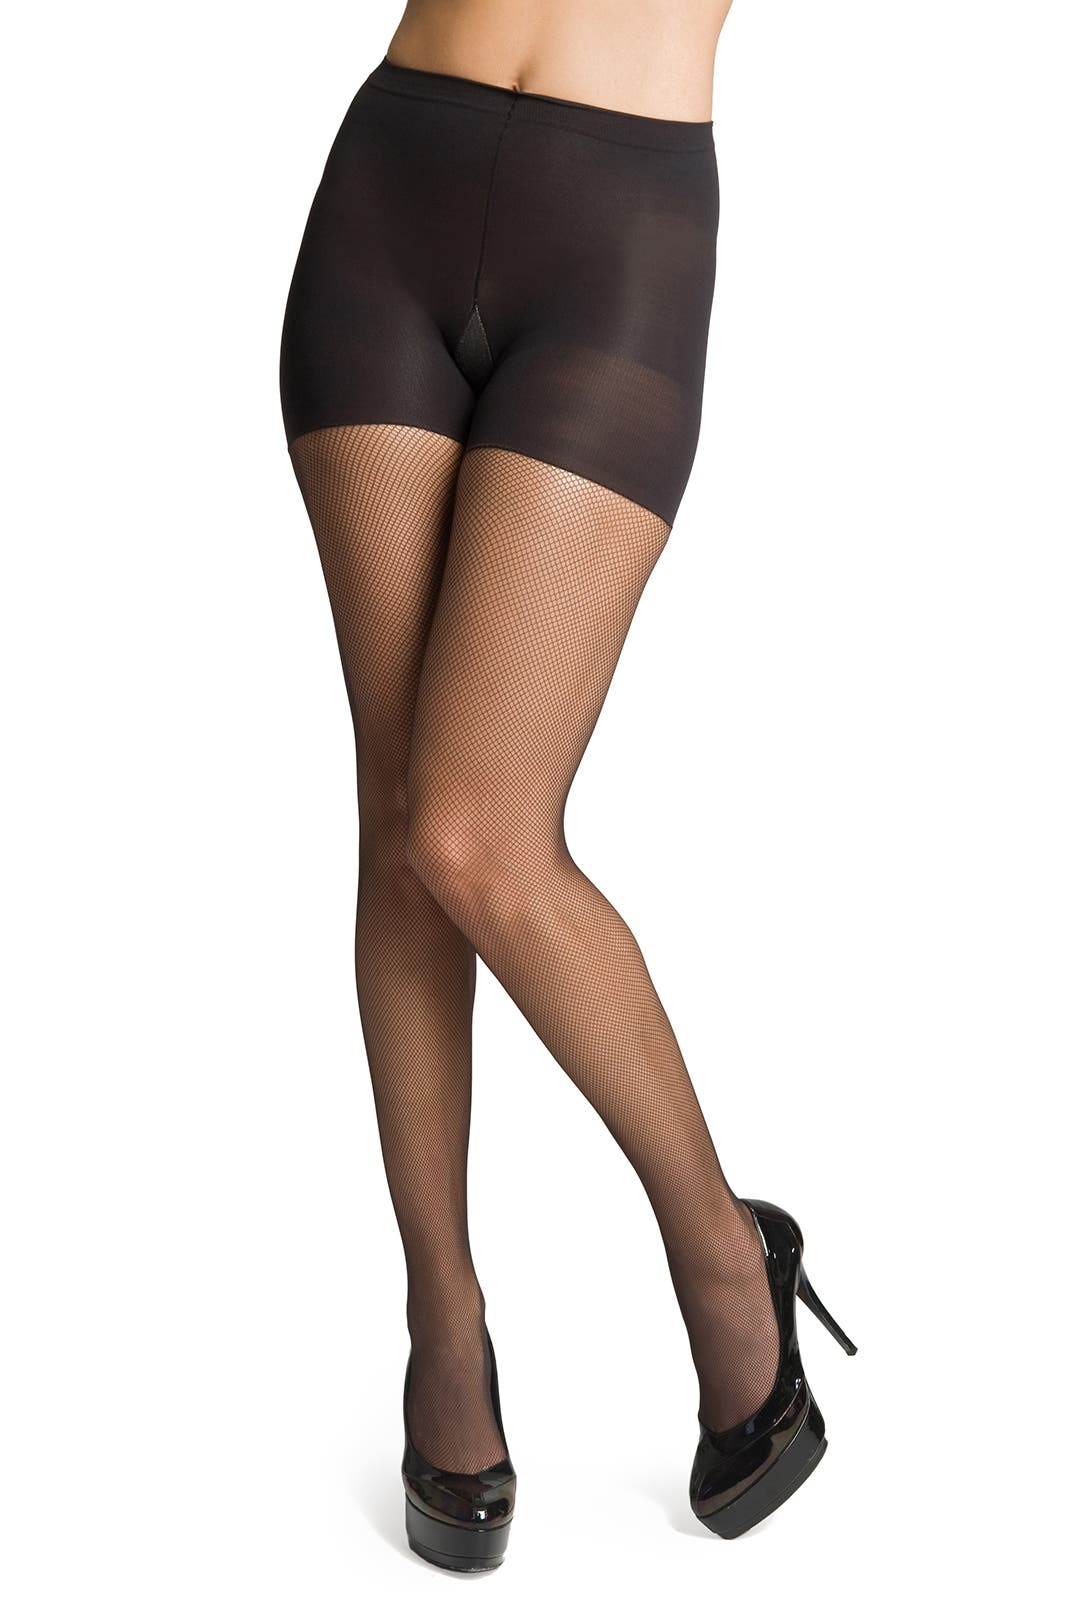 Black Micro Fish Net Tights by Spanx